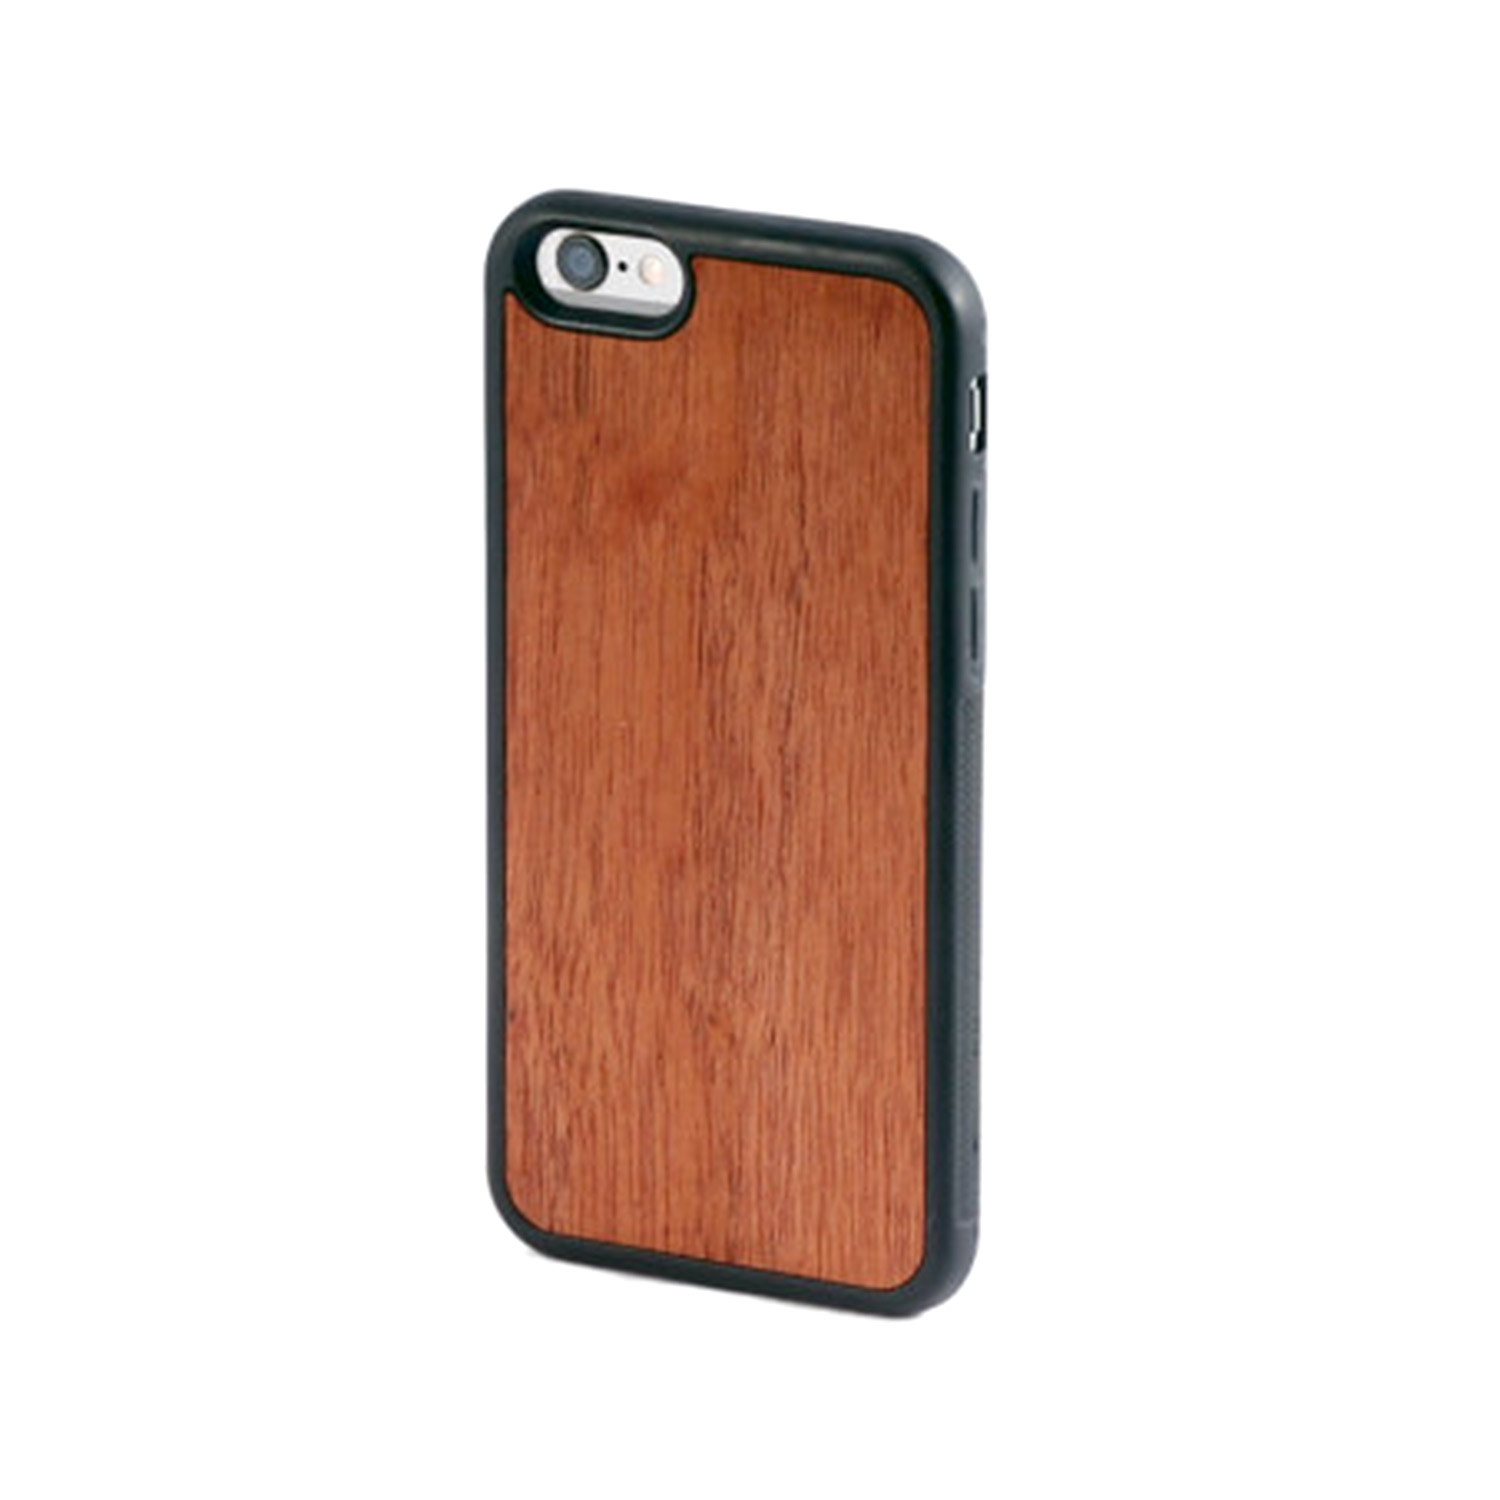 Touch Of Wood Iphone Case Mahogany Wood Iphone 6 6s